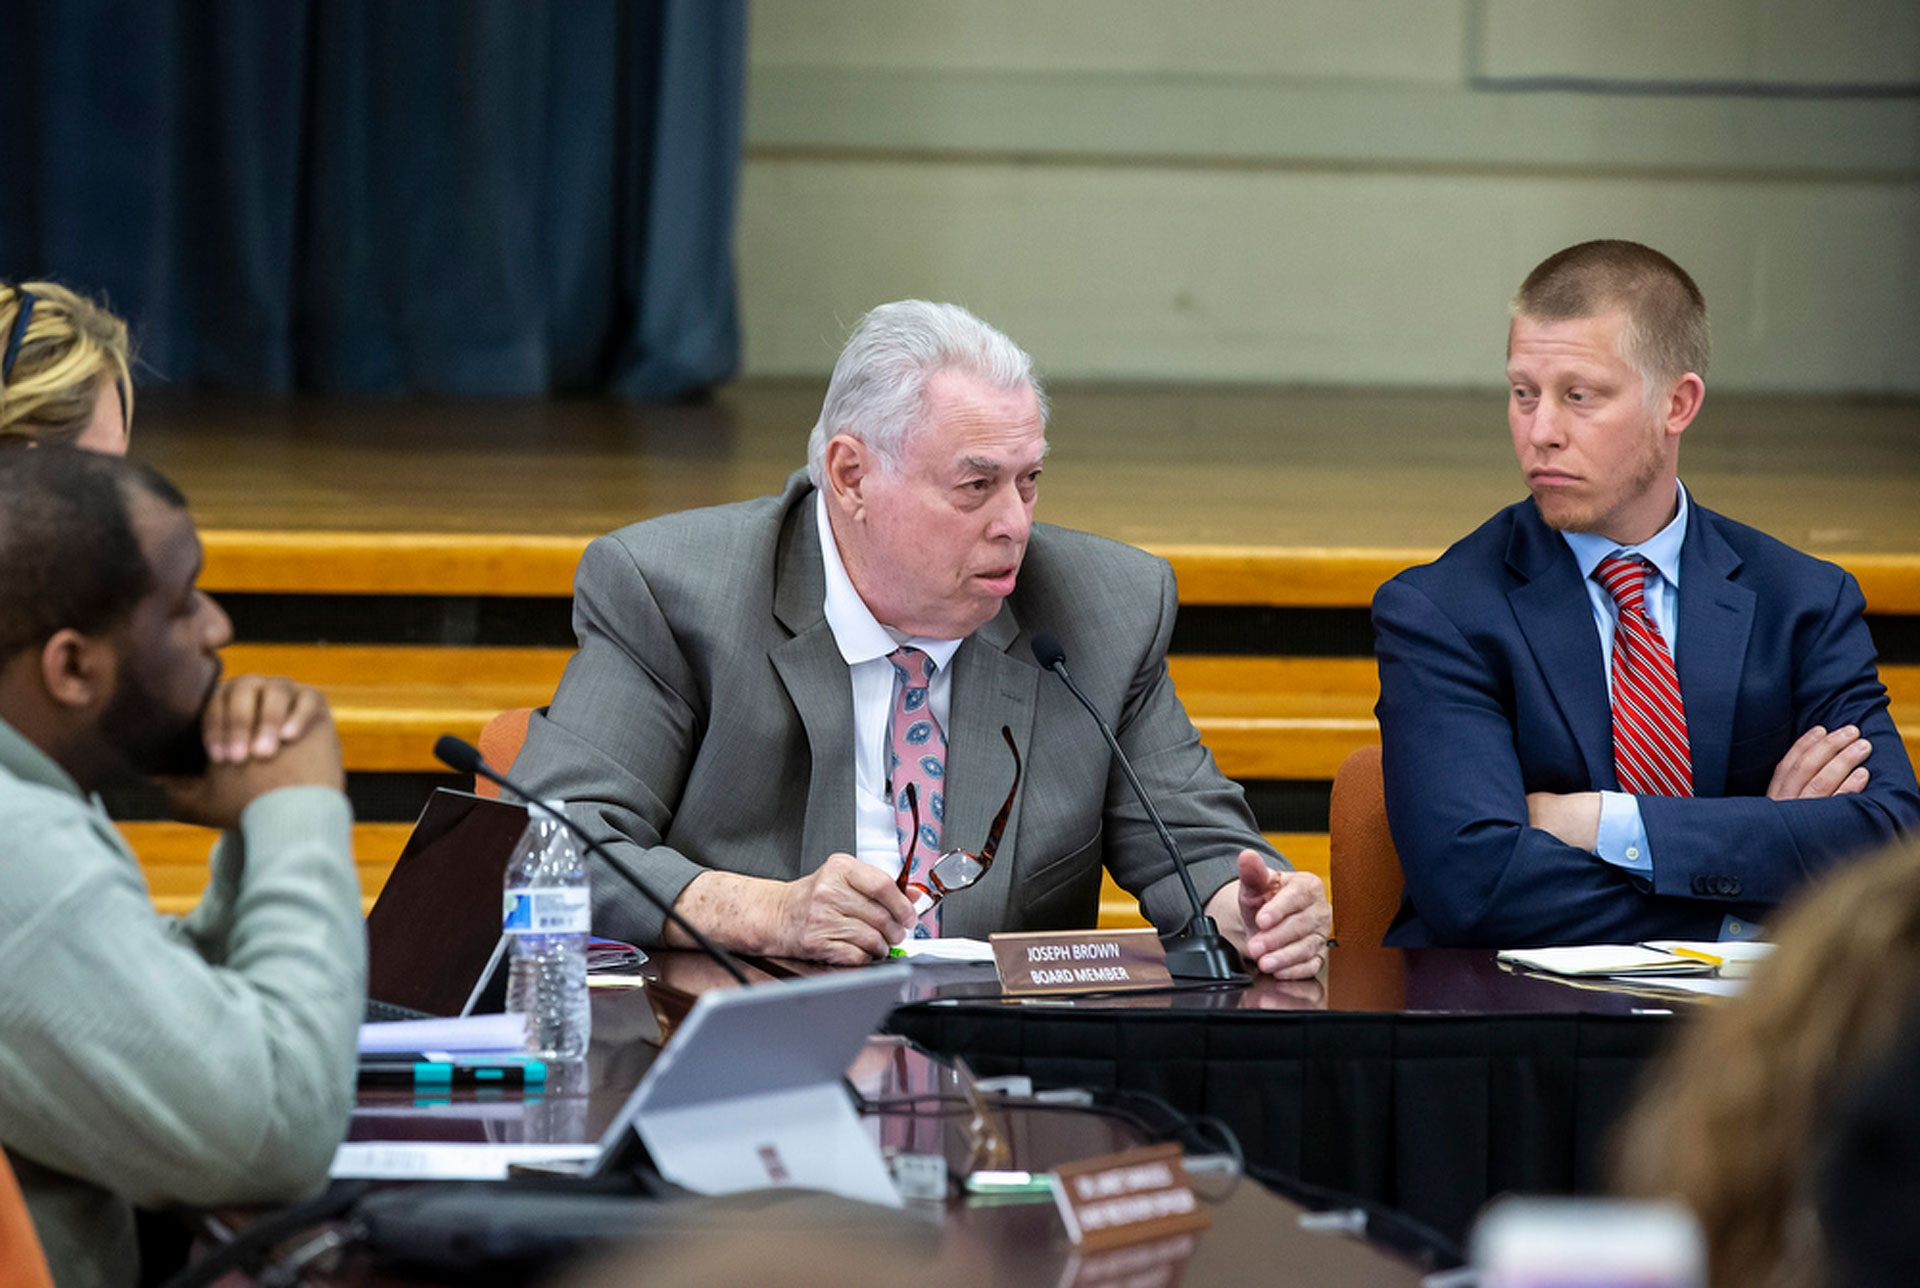 Harrisburg School District Board directors Joseph Brown and Judd Pittman during a special meeting to vote on hiring in-house solicitor James Ellison, Monday, April 22, 2019.